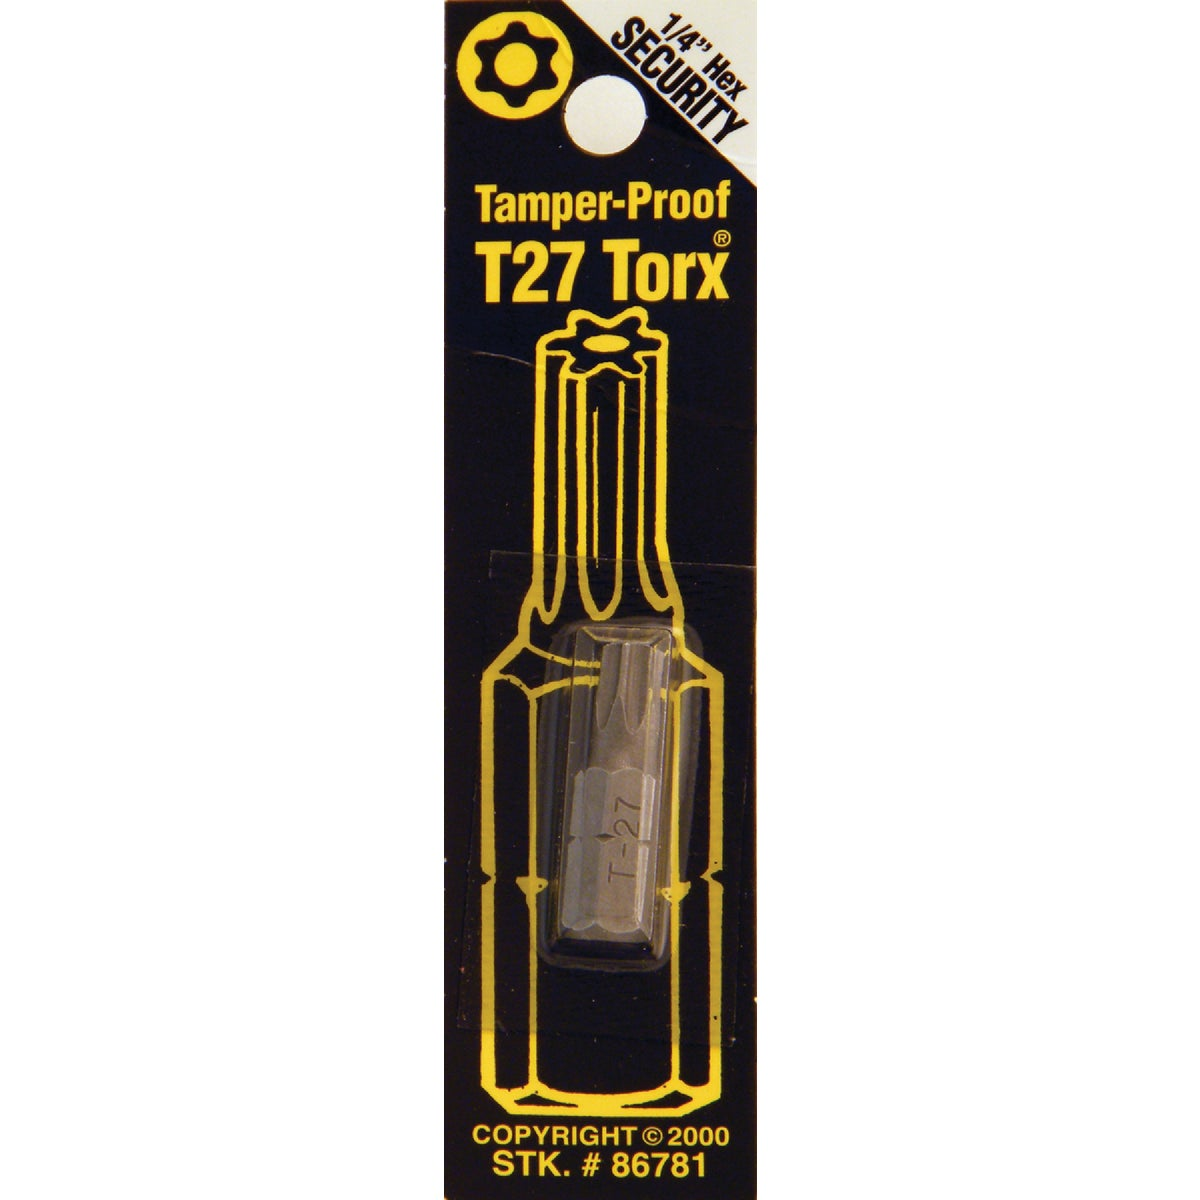 T27 TMPR SECURITY BIT - 86781 by Bwt Inc